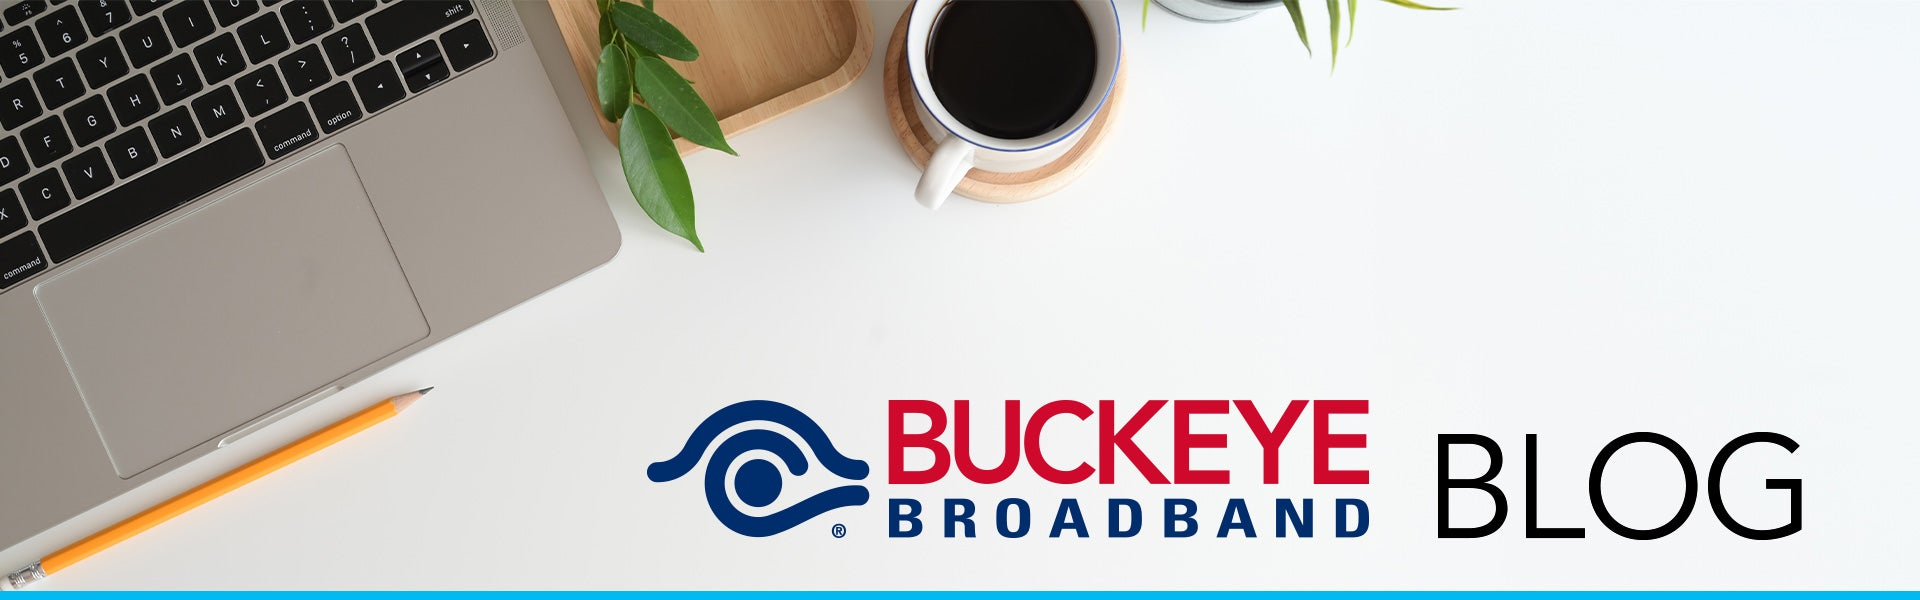 top view of laptop and coffee mug with text that says buckeye broadband blog